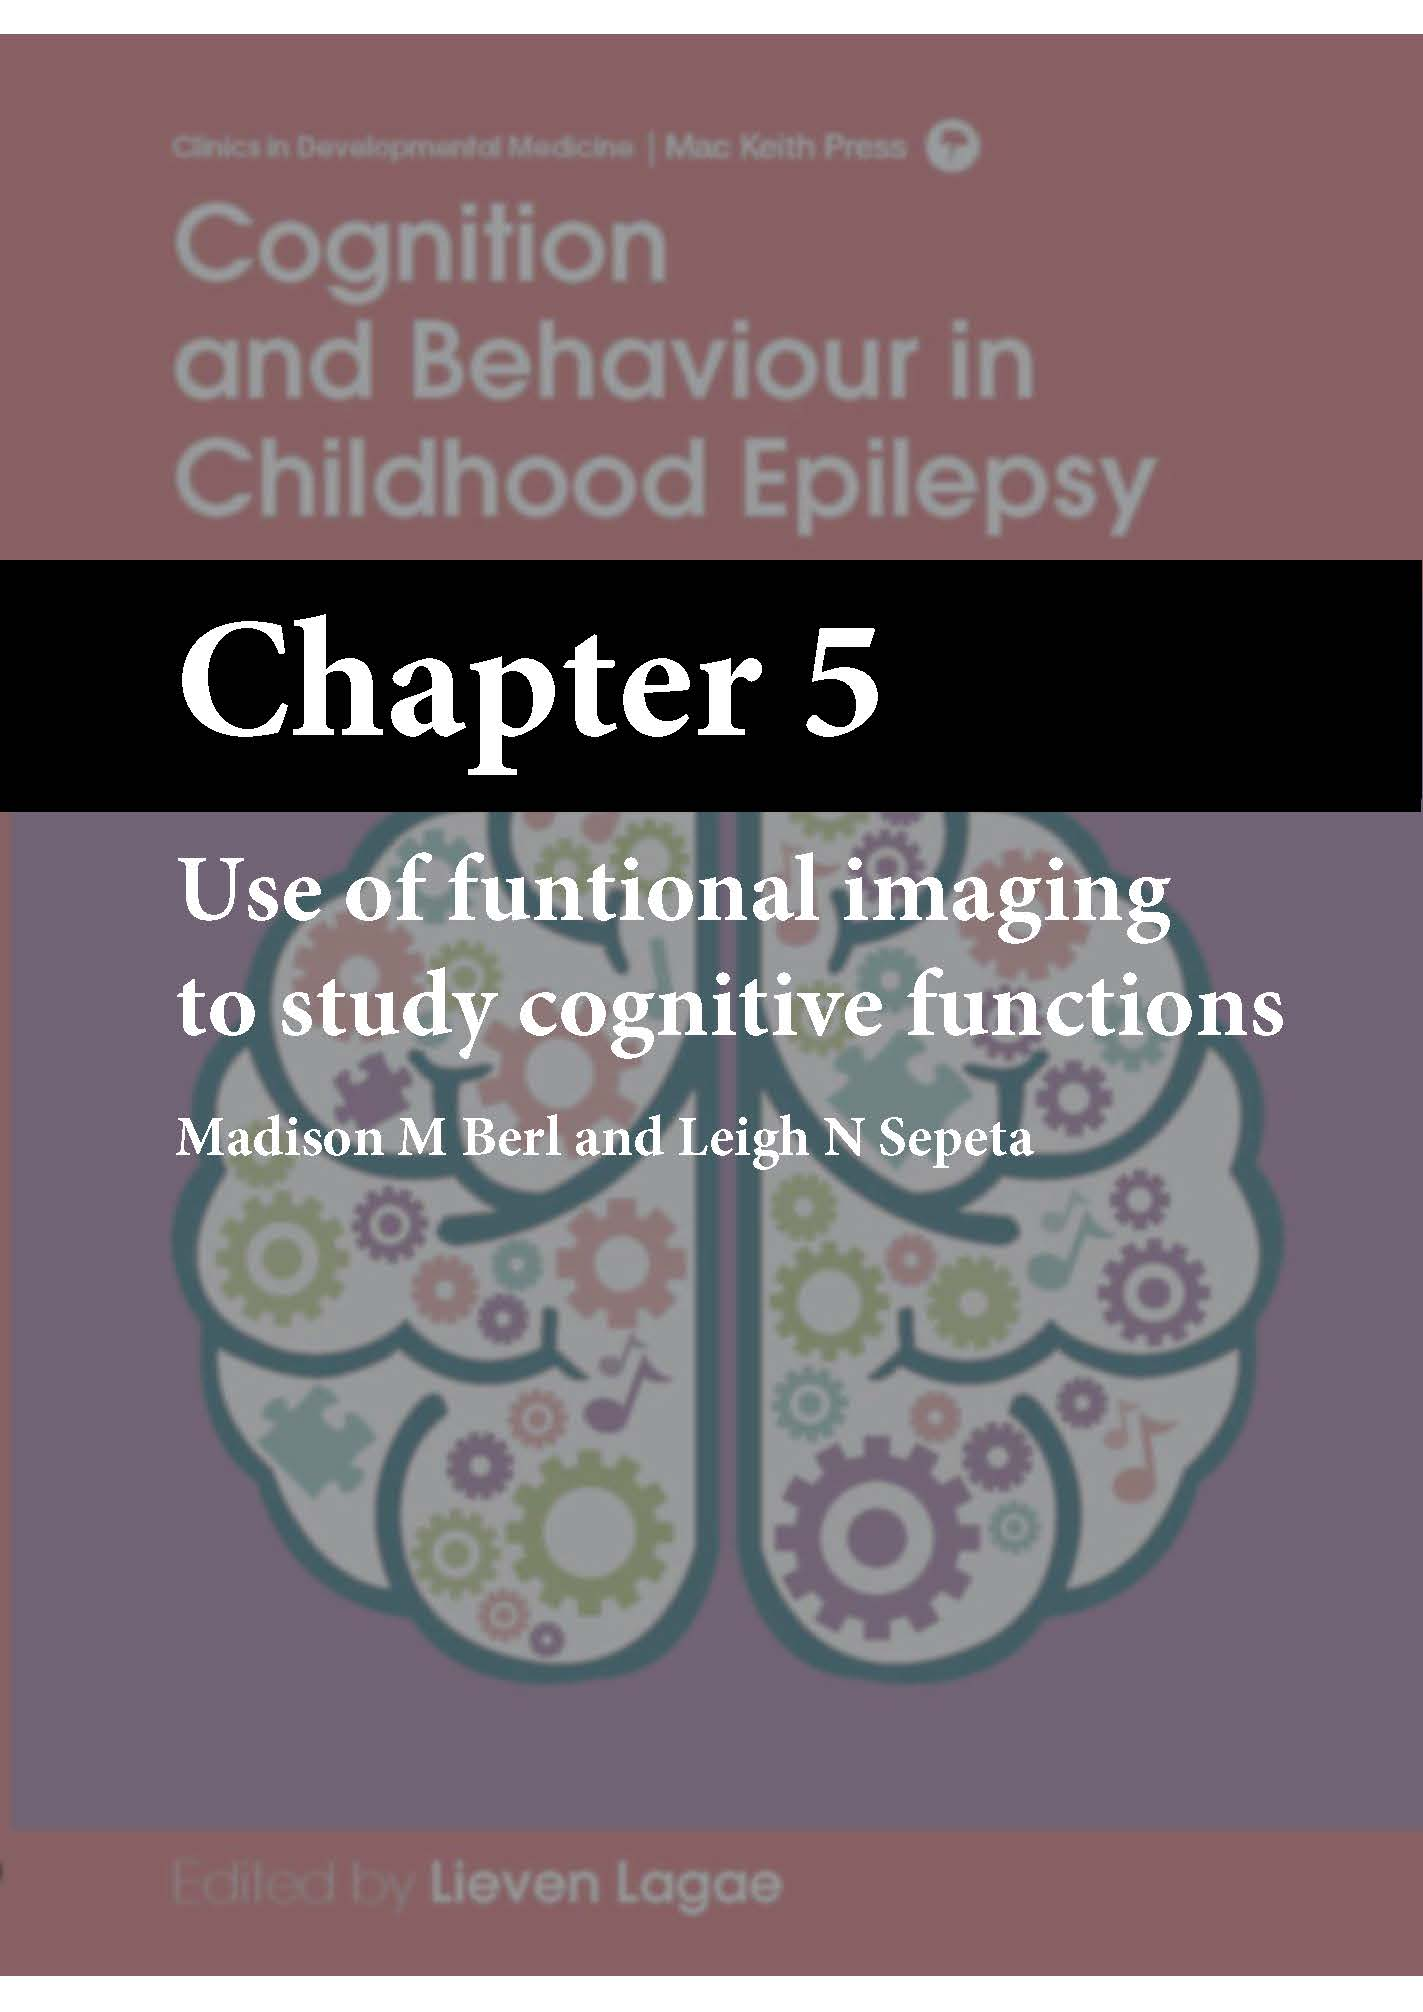 Cognition and Behaviour in Childhood Epilepsy, Lagae, Chapter 5 cover